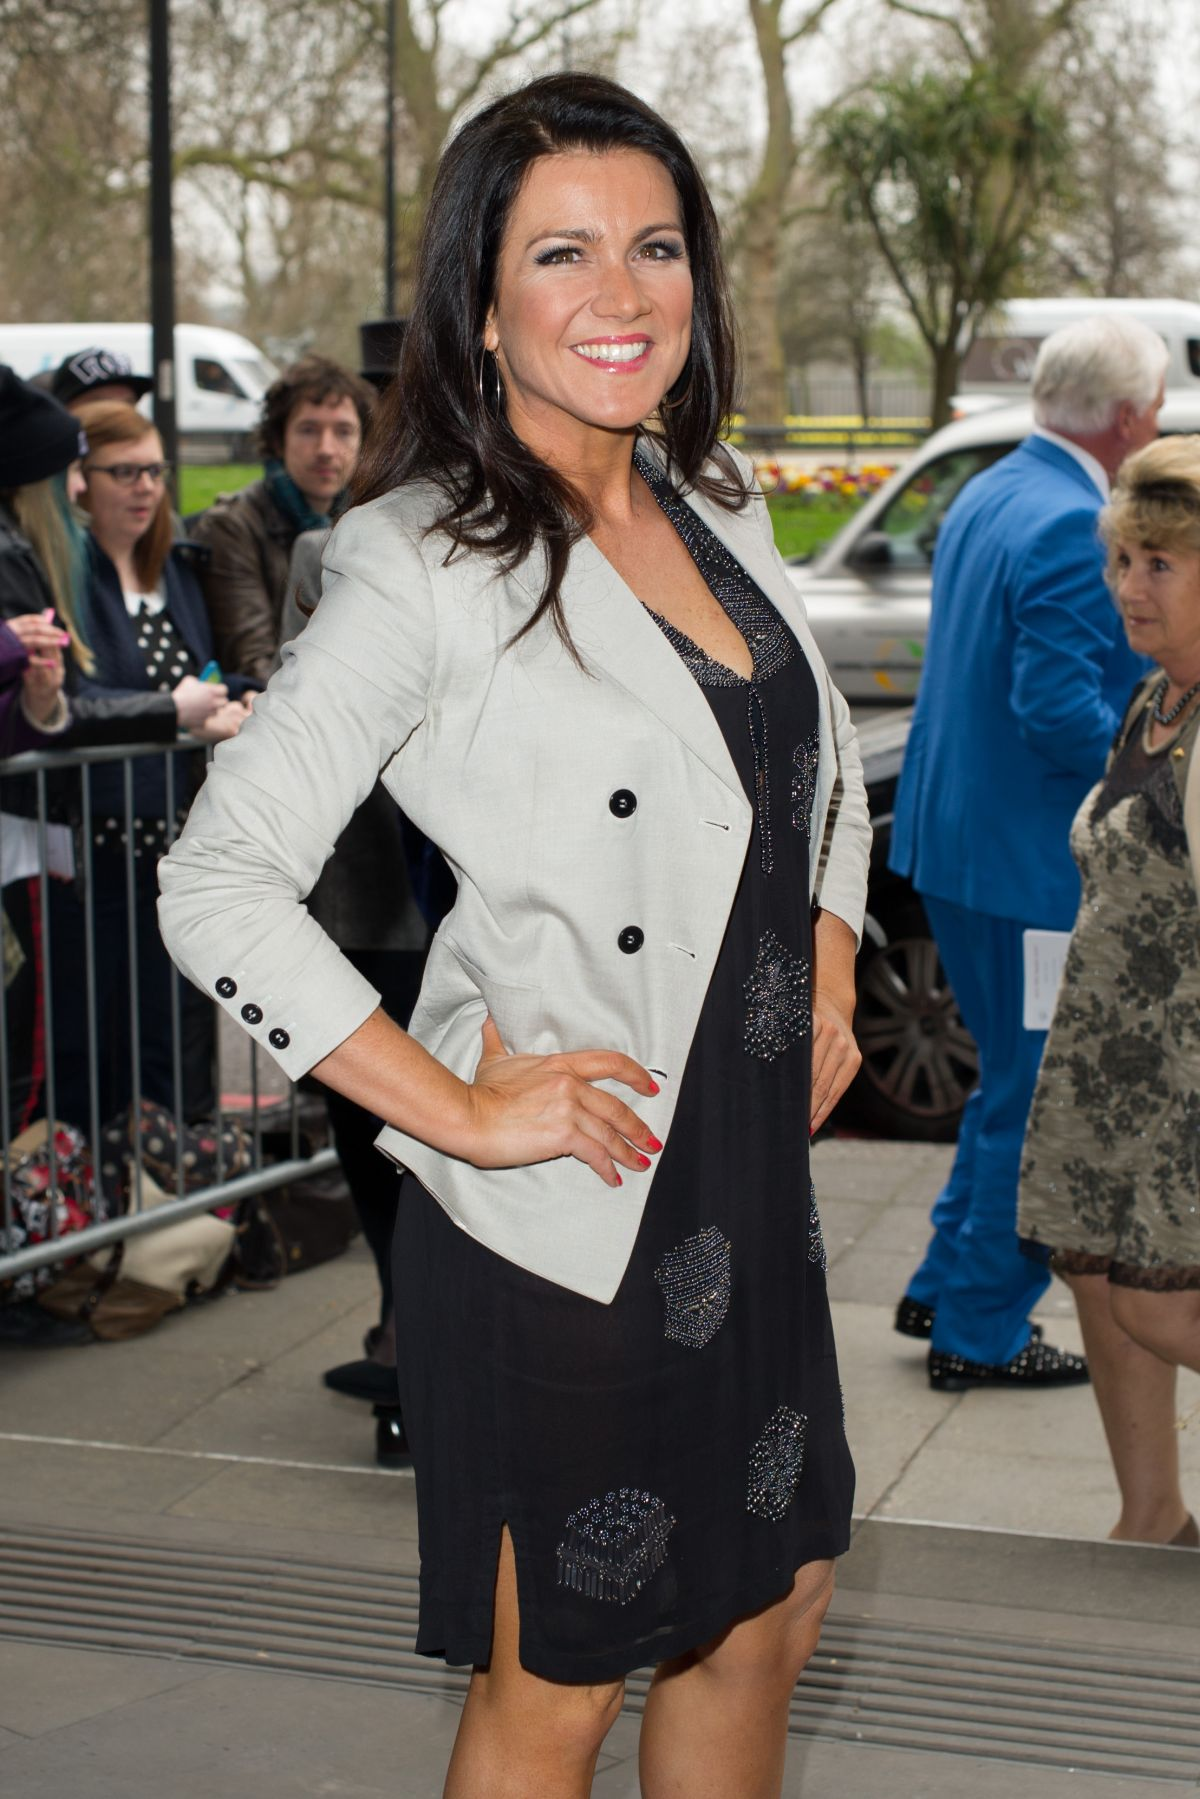 SUSANNA REID at TRIC Awards 2014 in London